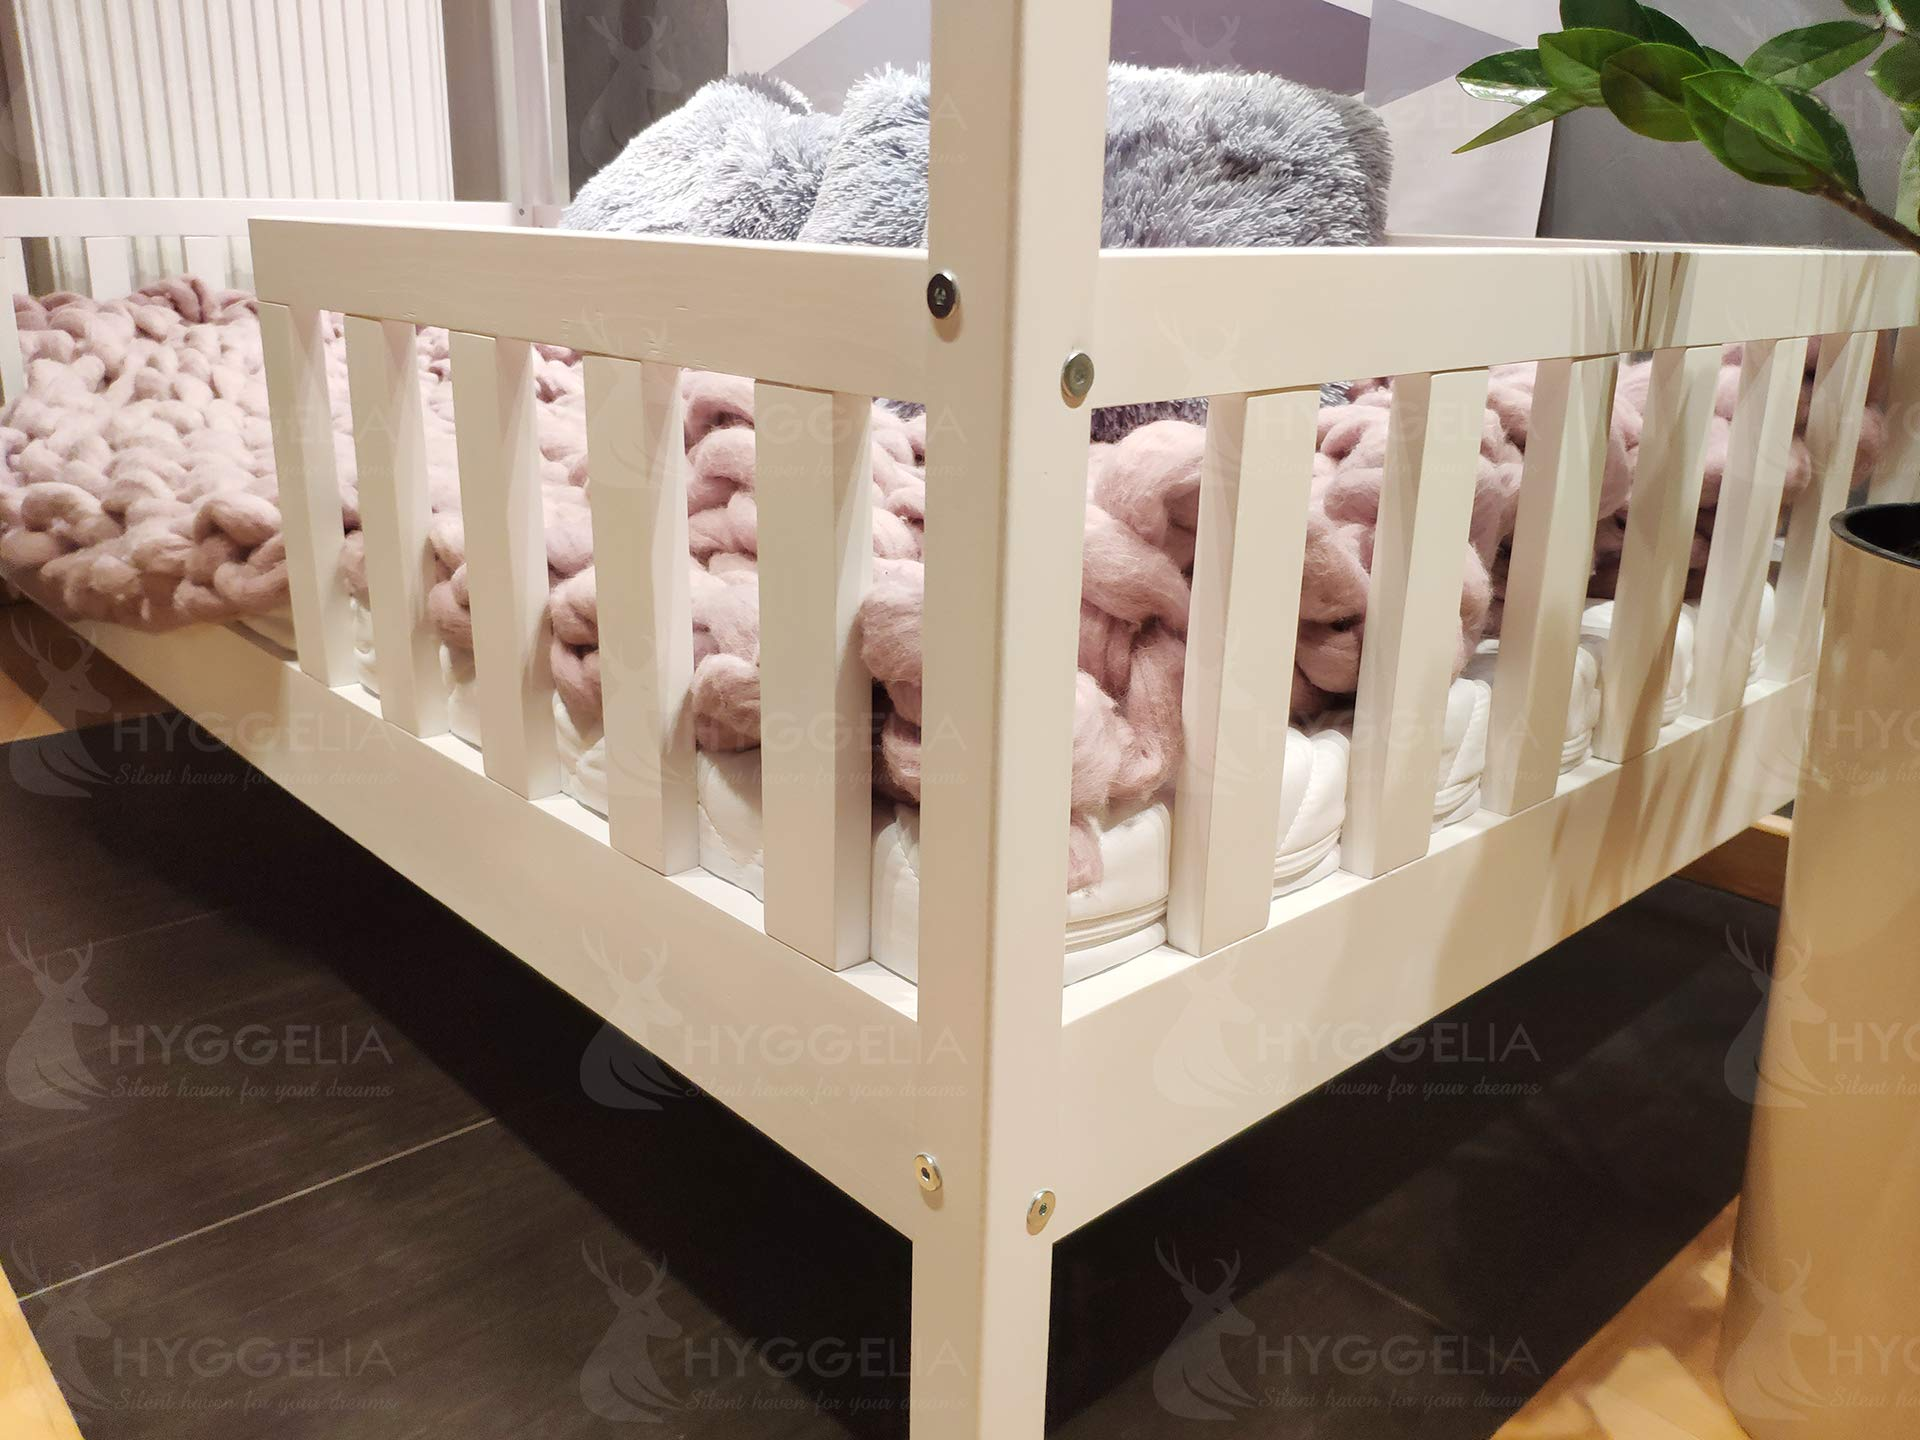 House BED with barriers Chester Wooden bed for children bed for teenager Bedroom furniture cottages wooden cottage bed (193 x 203 cm (King Size)) Hyggelia Material: First class natural pine chipless wood Colour: Natural wood Permissible weight: 180kg 2